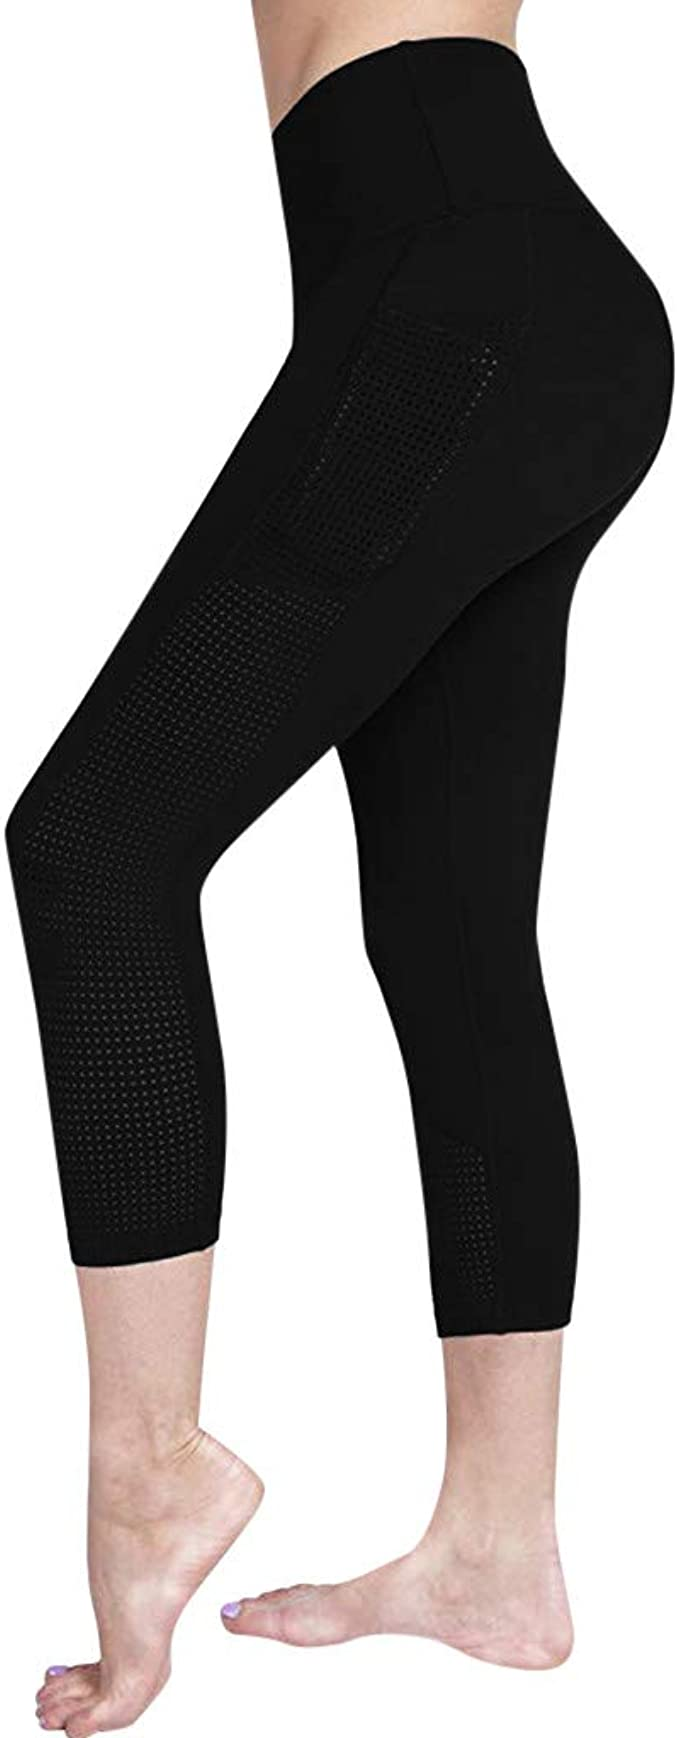 cinnamou Ropa Deportiva Rugby Pantalones De Fitness para Mujer ...